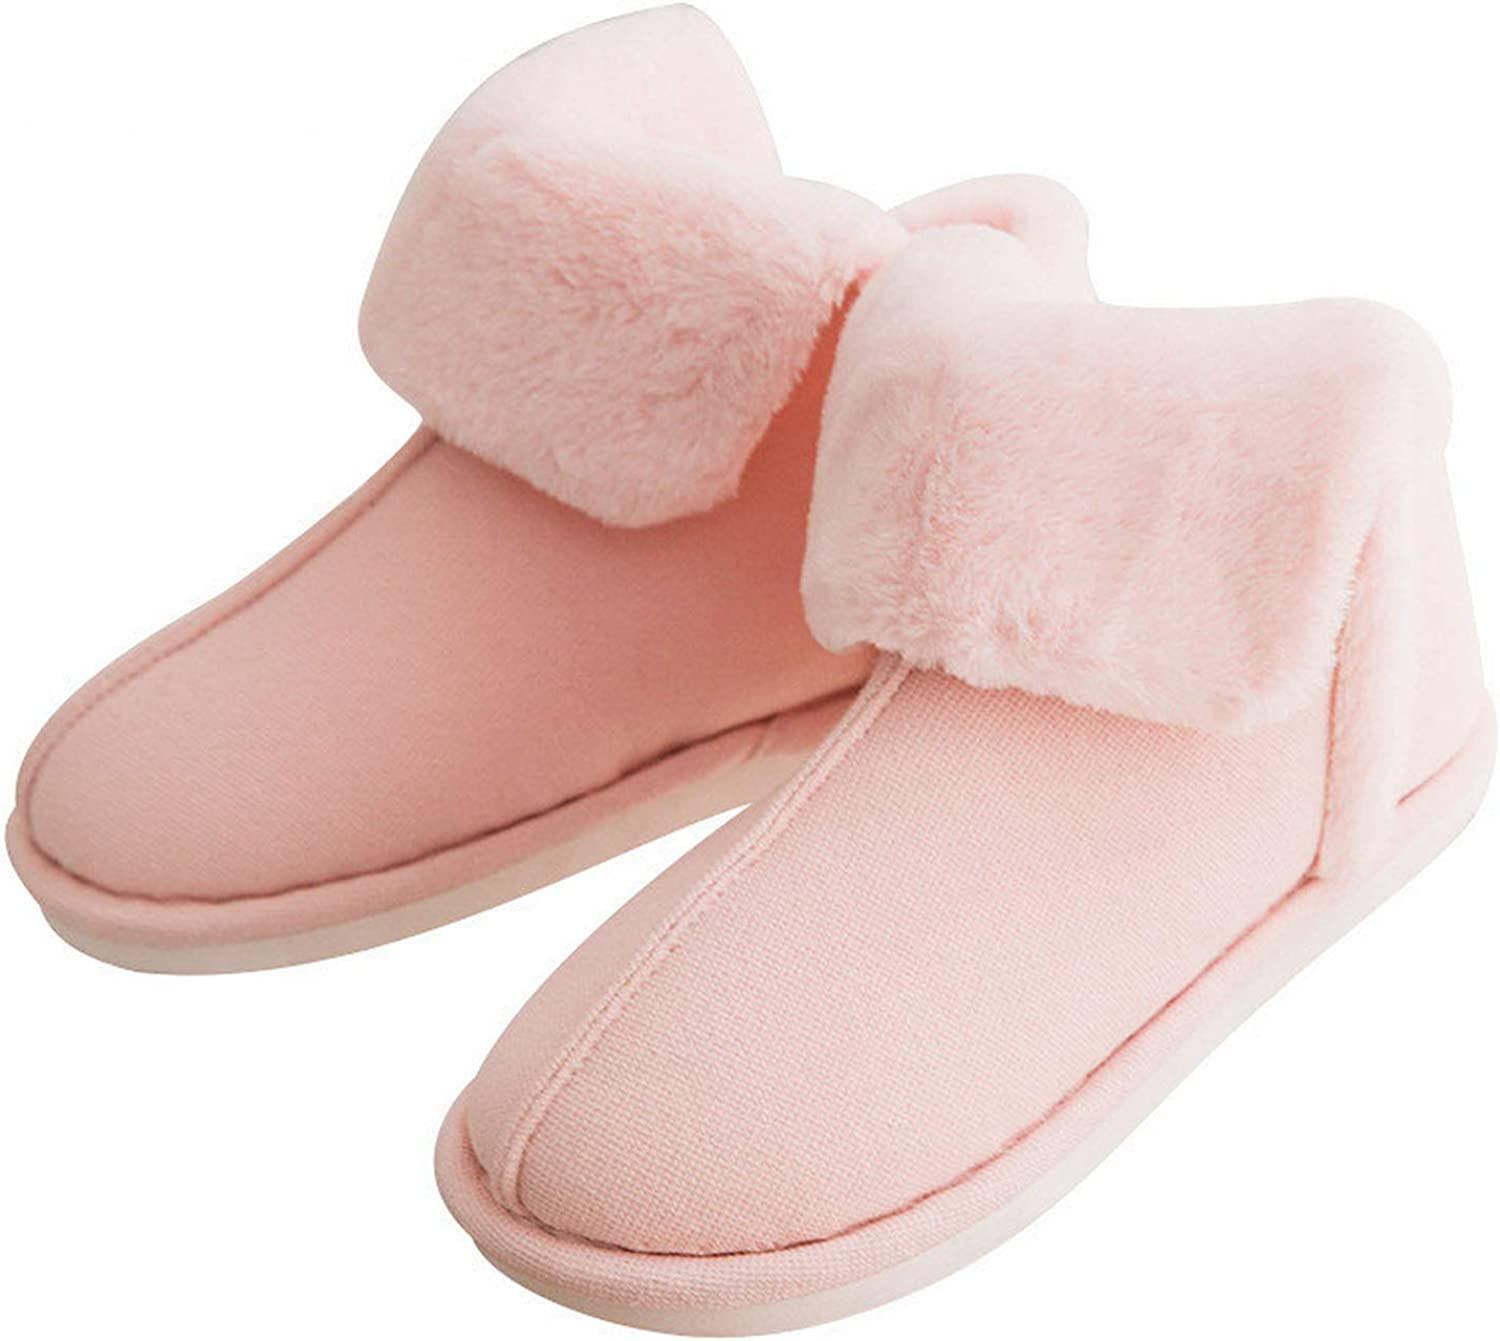 Together to create a miracle Women Indoor Slippers Winter Warm Plush Home Faux Fur Slip-On Cotton Fake Rabbit Hair shoes